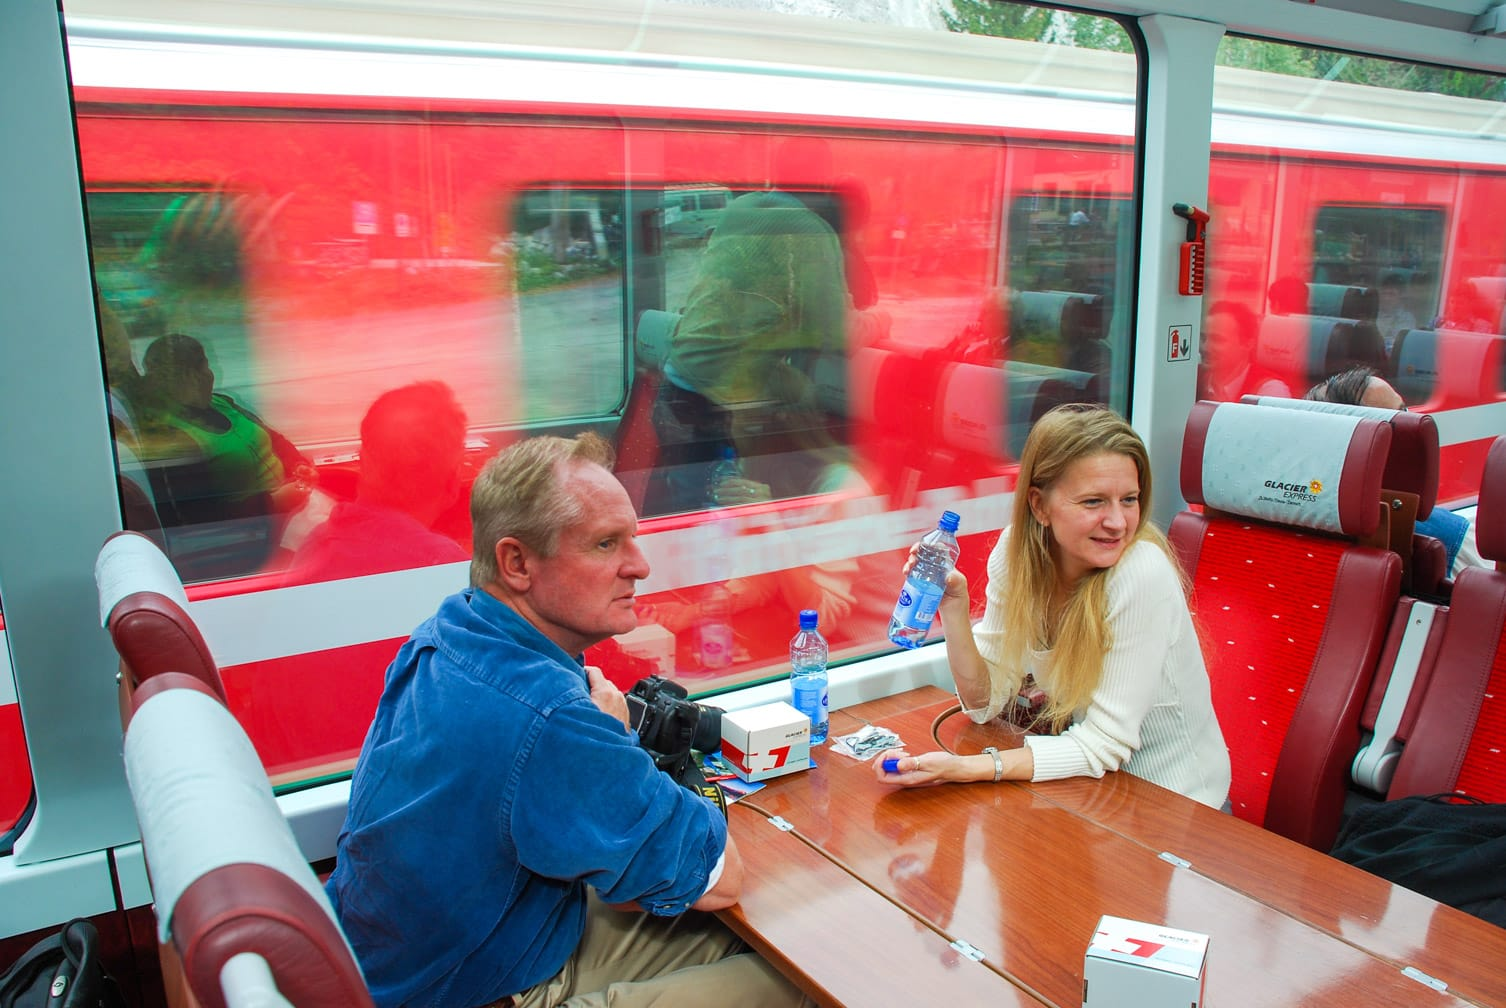 Guests drinking water on the Glacier Express train